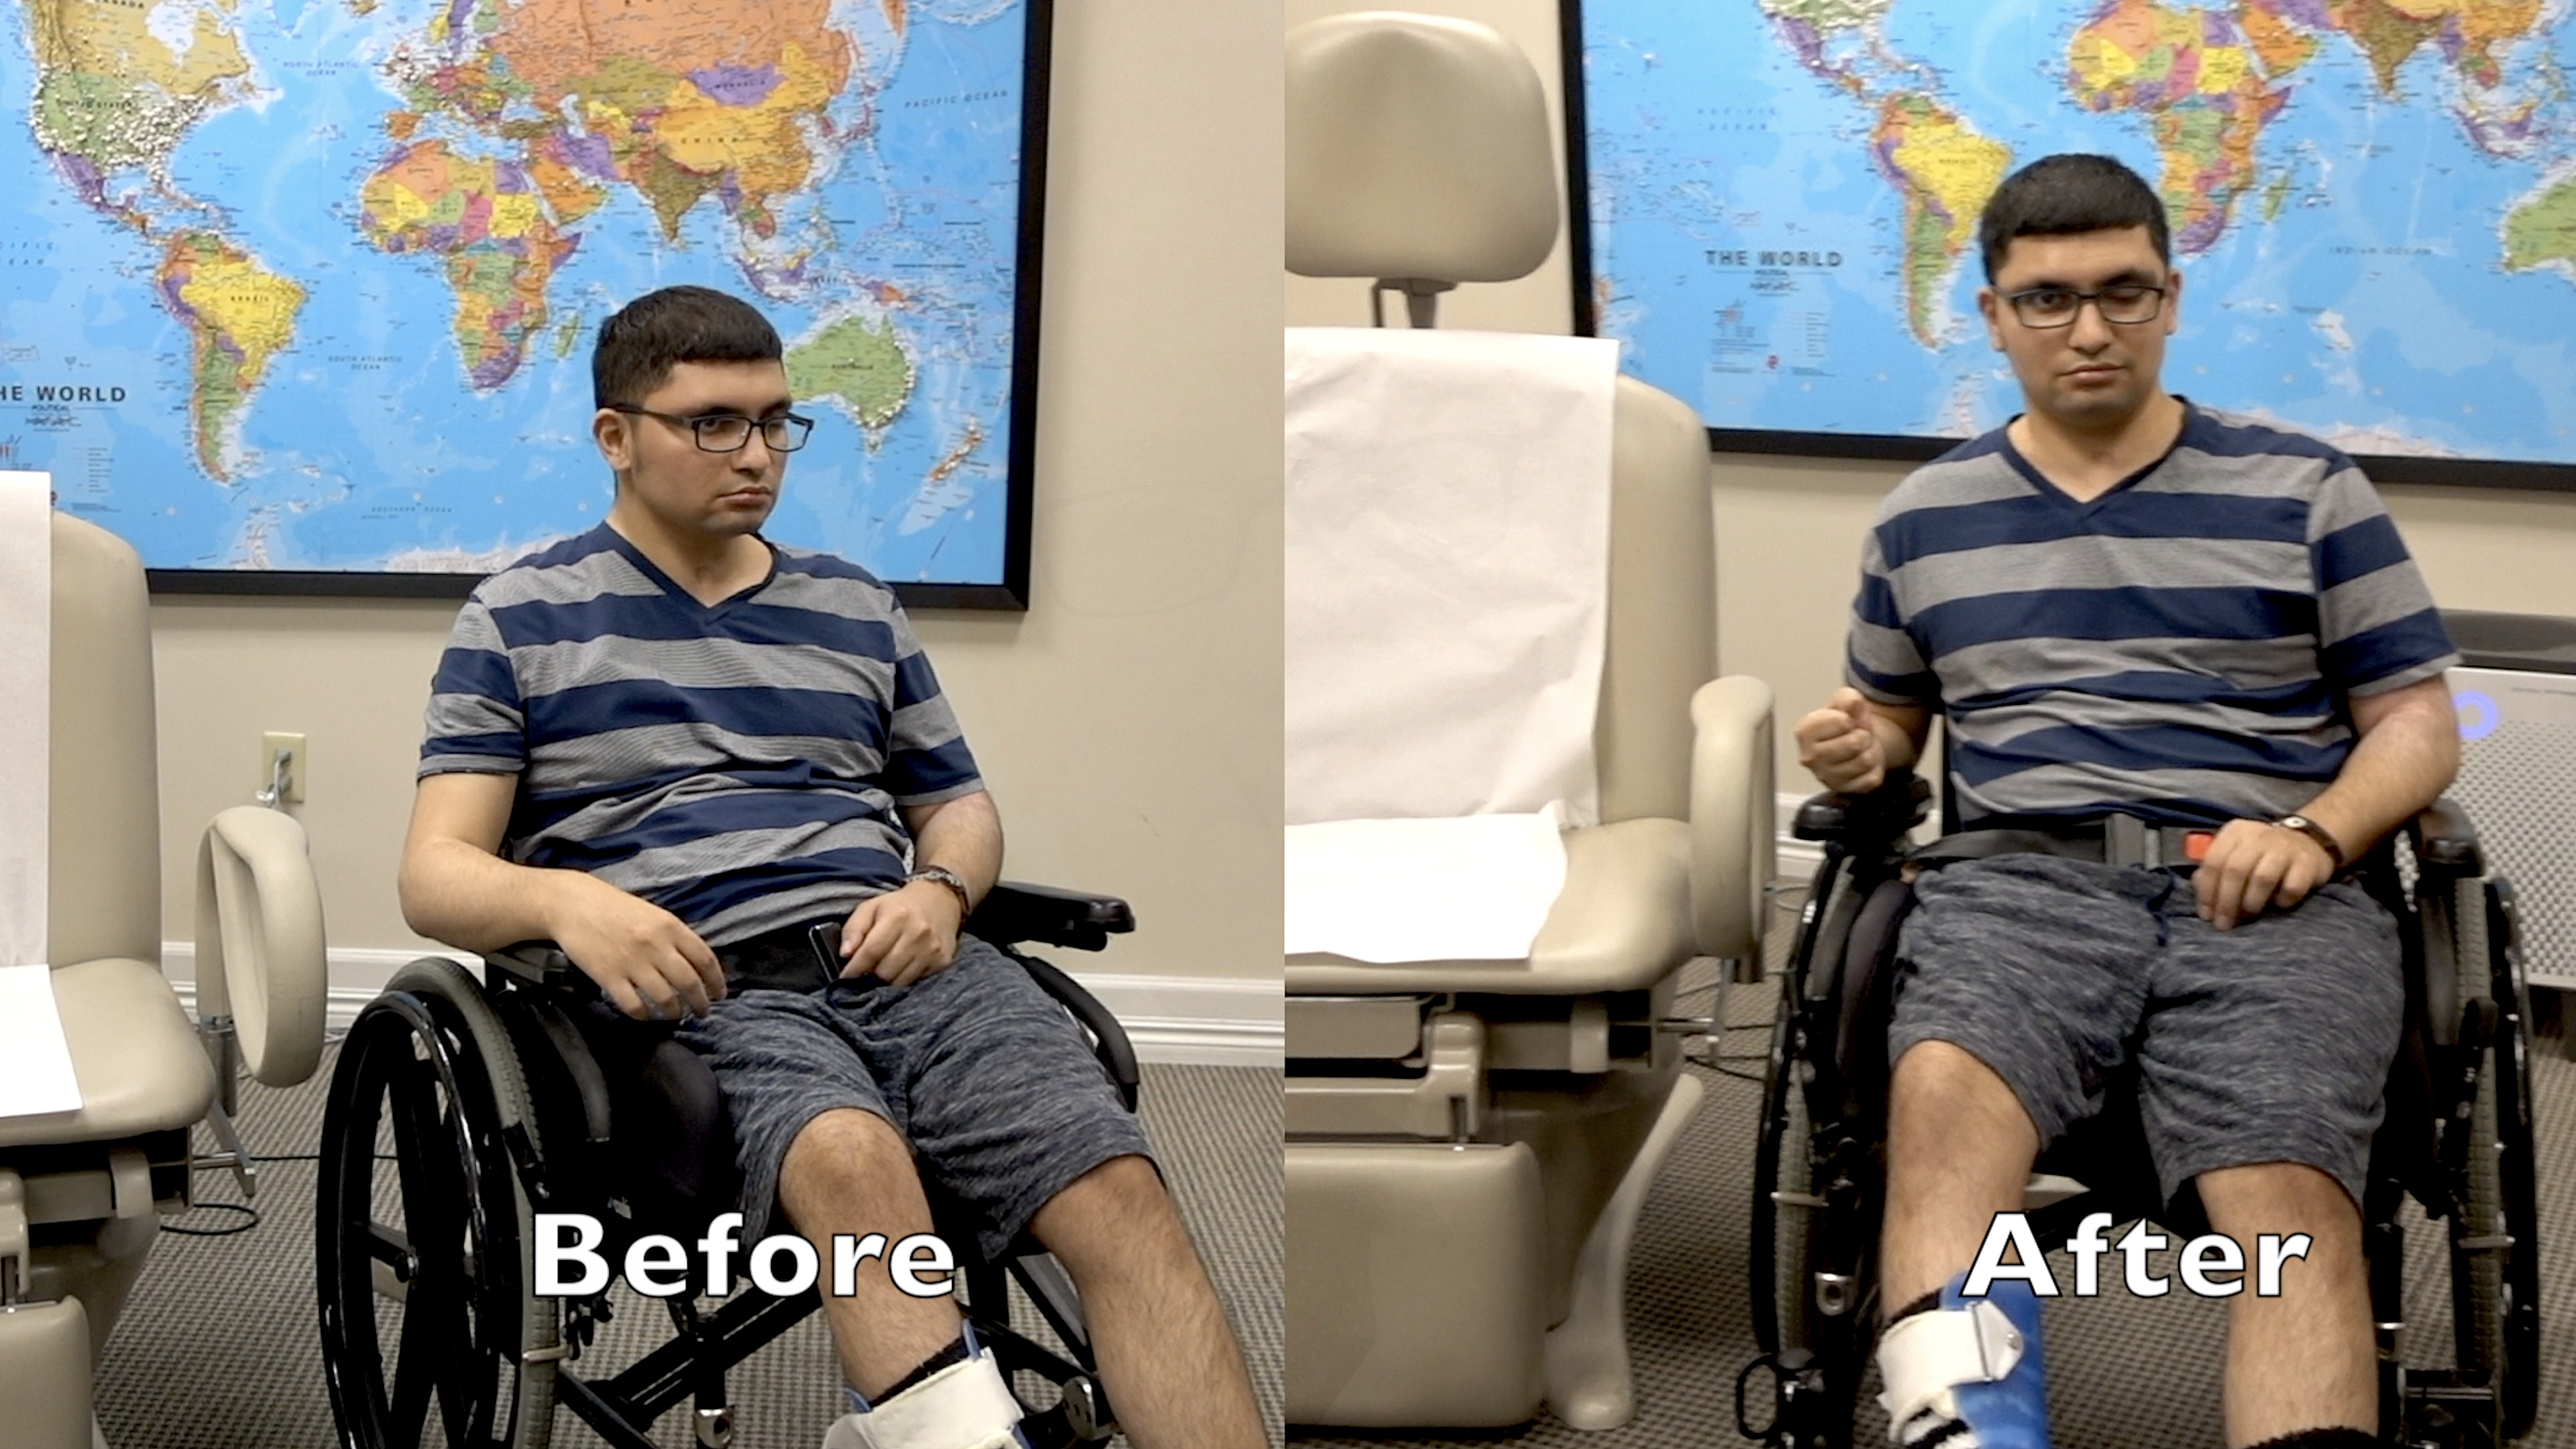 Ataxia rapidly improves after treatment with PSE more than 3 years after stroke